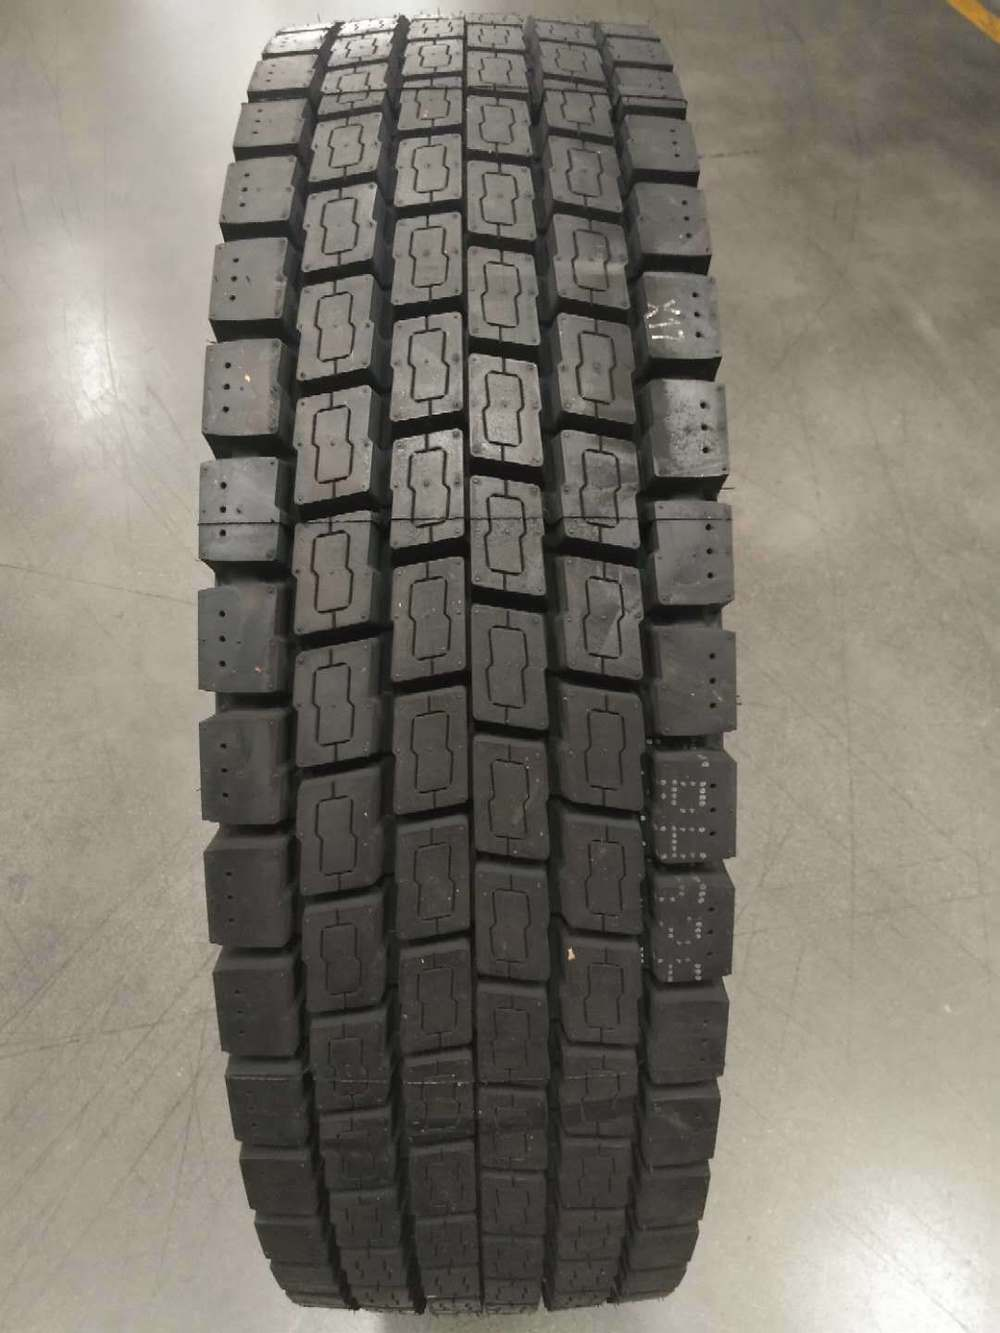 385/65r22.5 315/80r22.5 315/70r22.5 New Rubber Solid Radial Truck Tires Made in Korean in Thailand for Sale